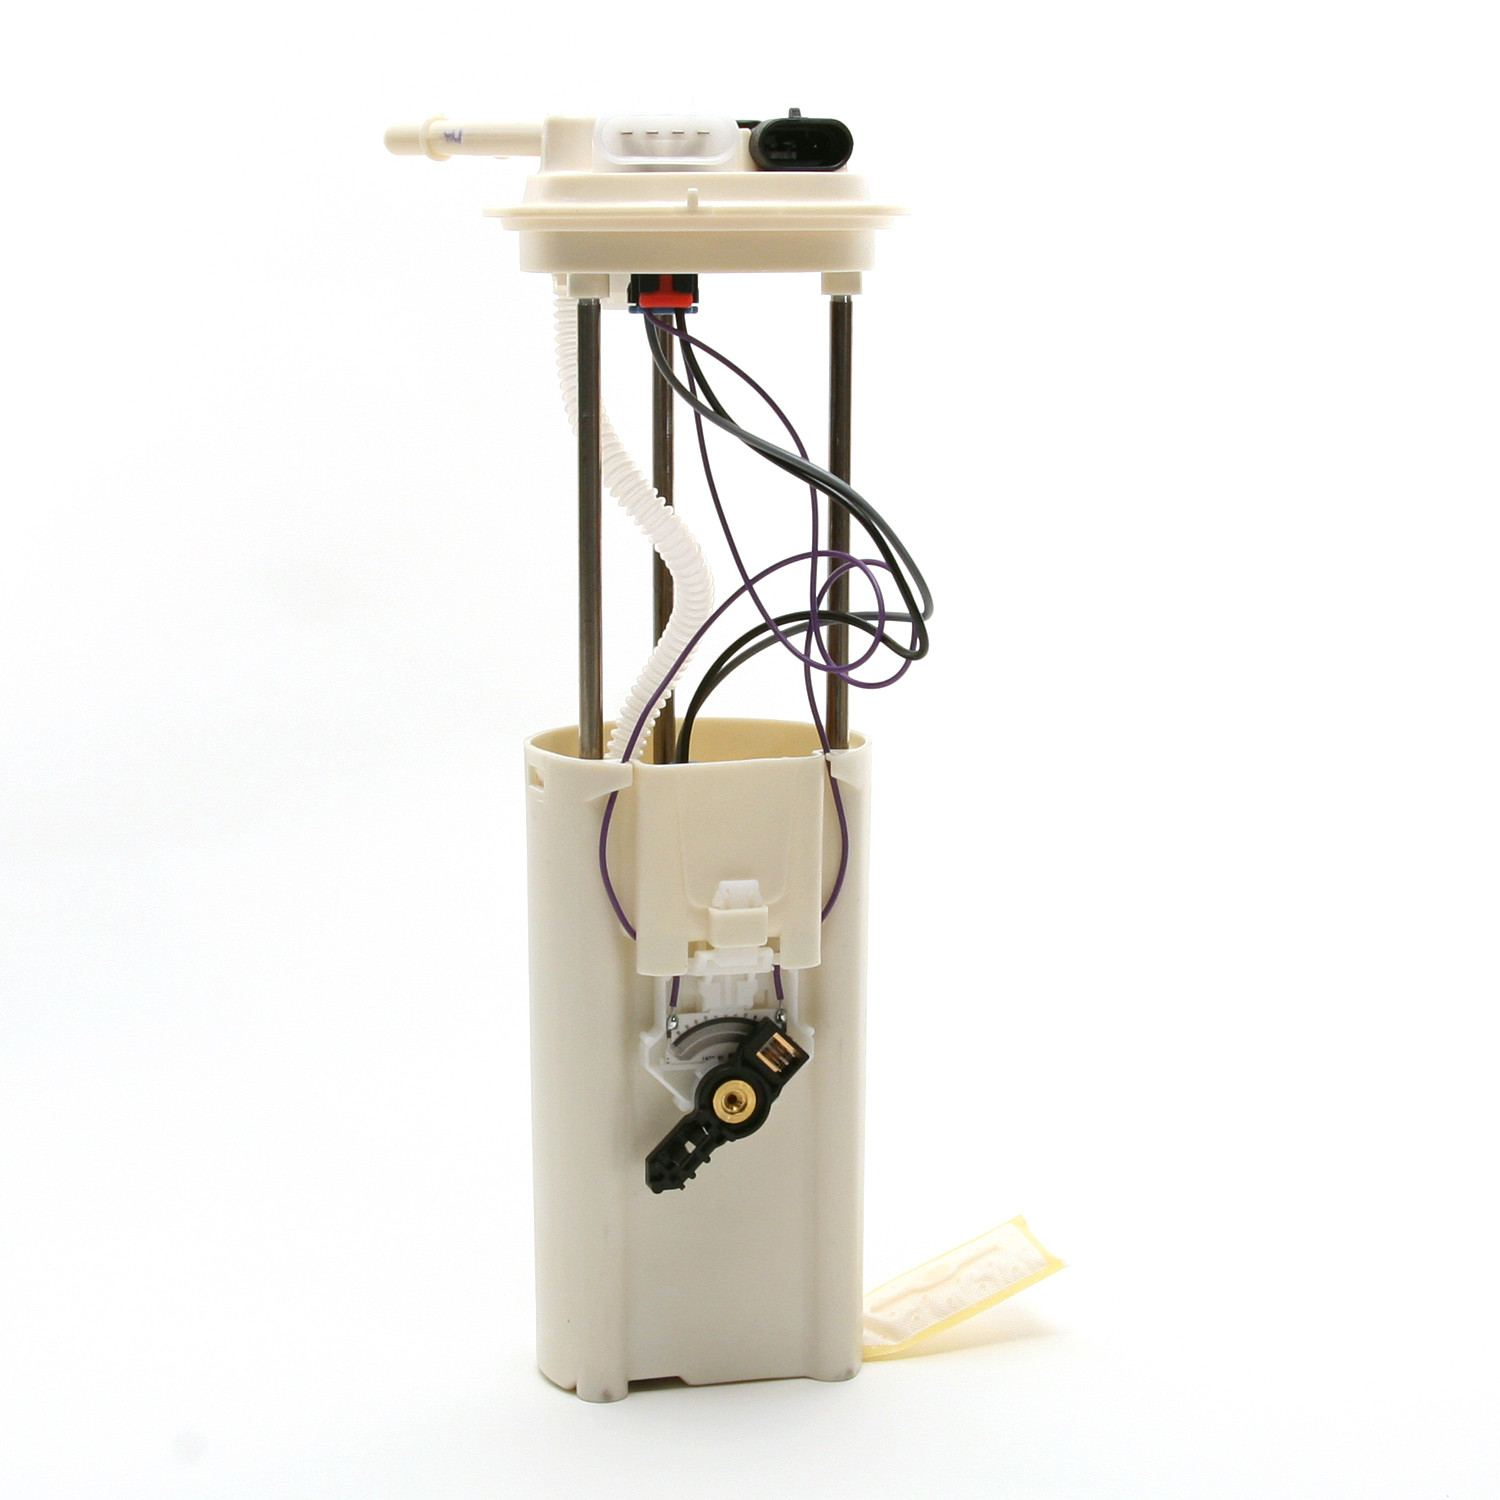 DELPHI - Fuel Pump Module Assembly - DPH FG0071